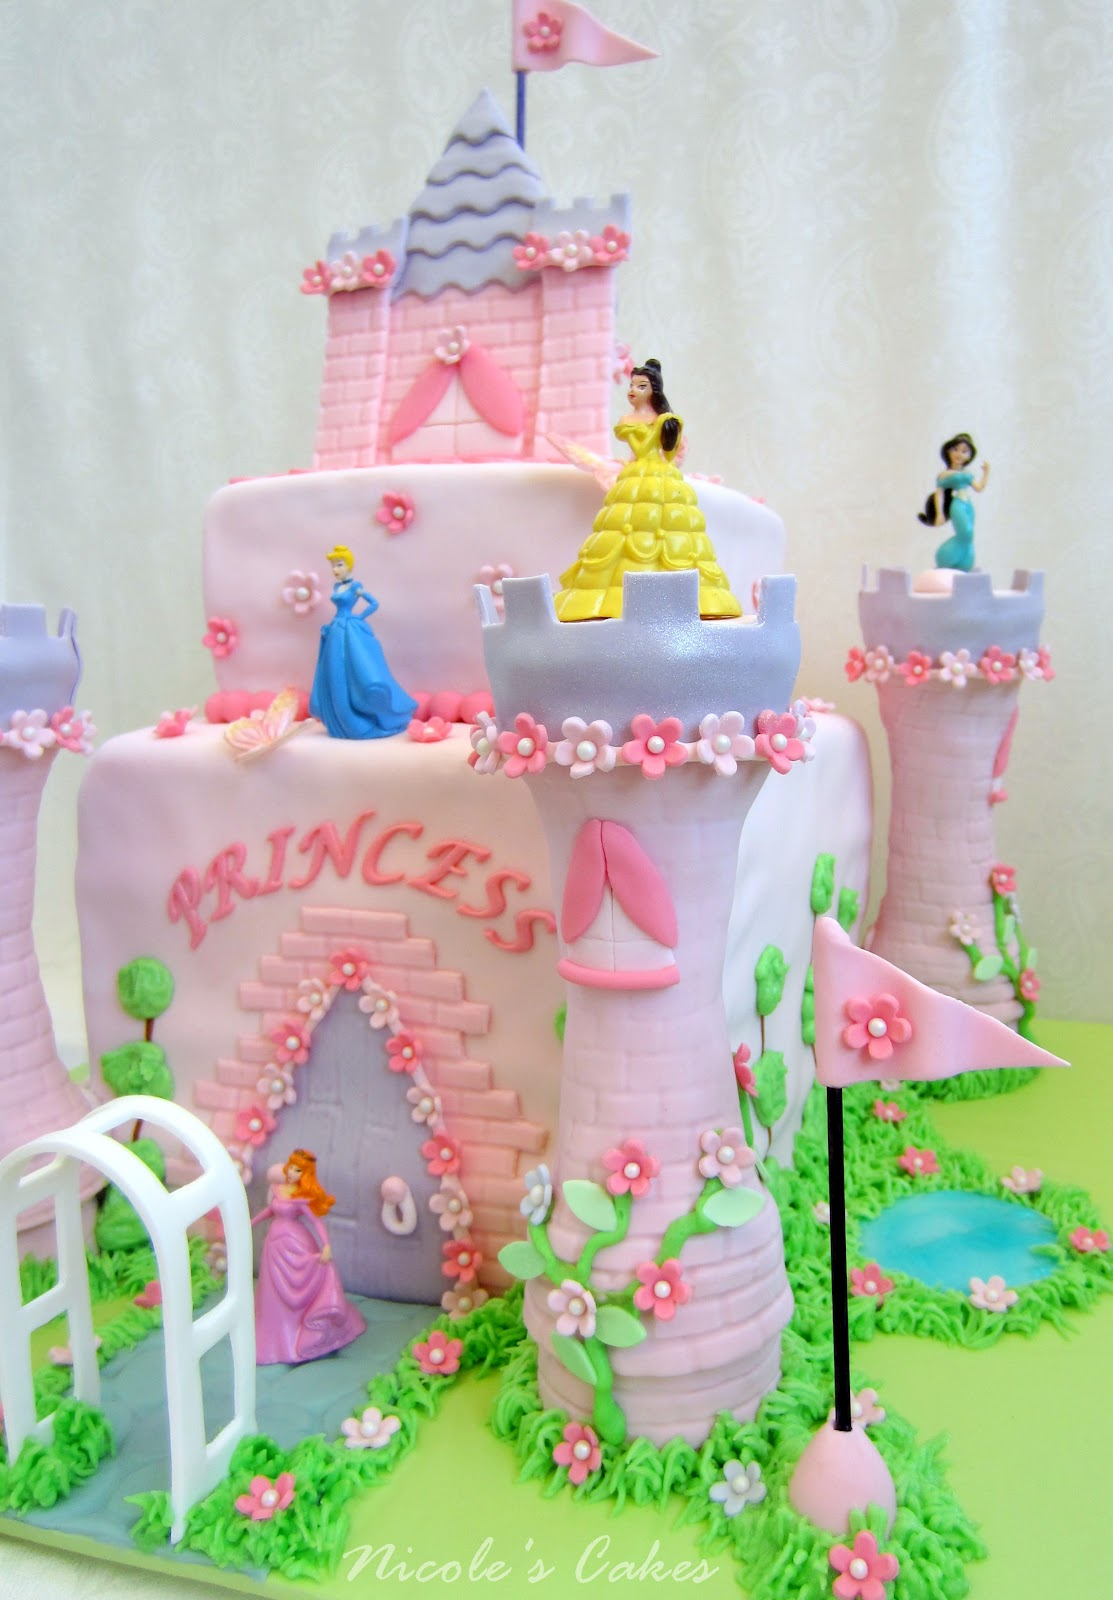 How To Make A Fairy Tale Castle Birthday Cake